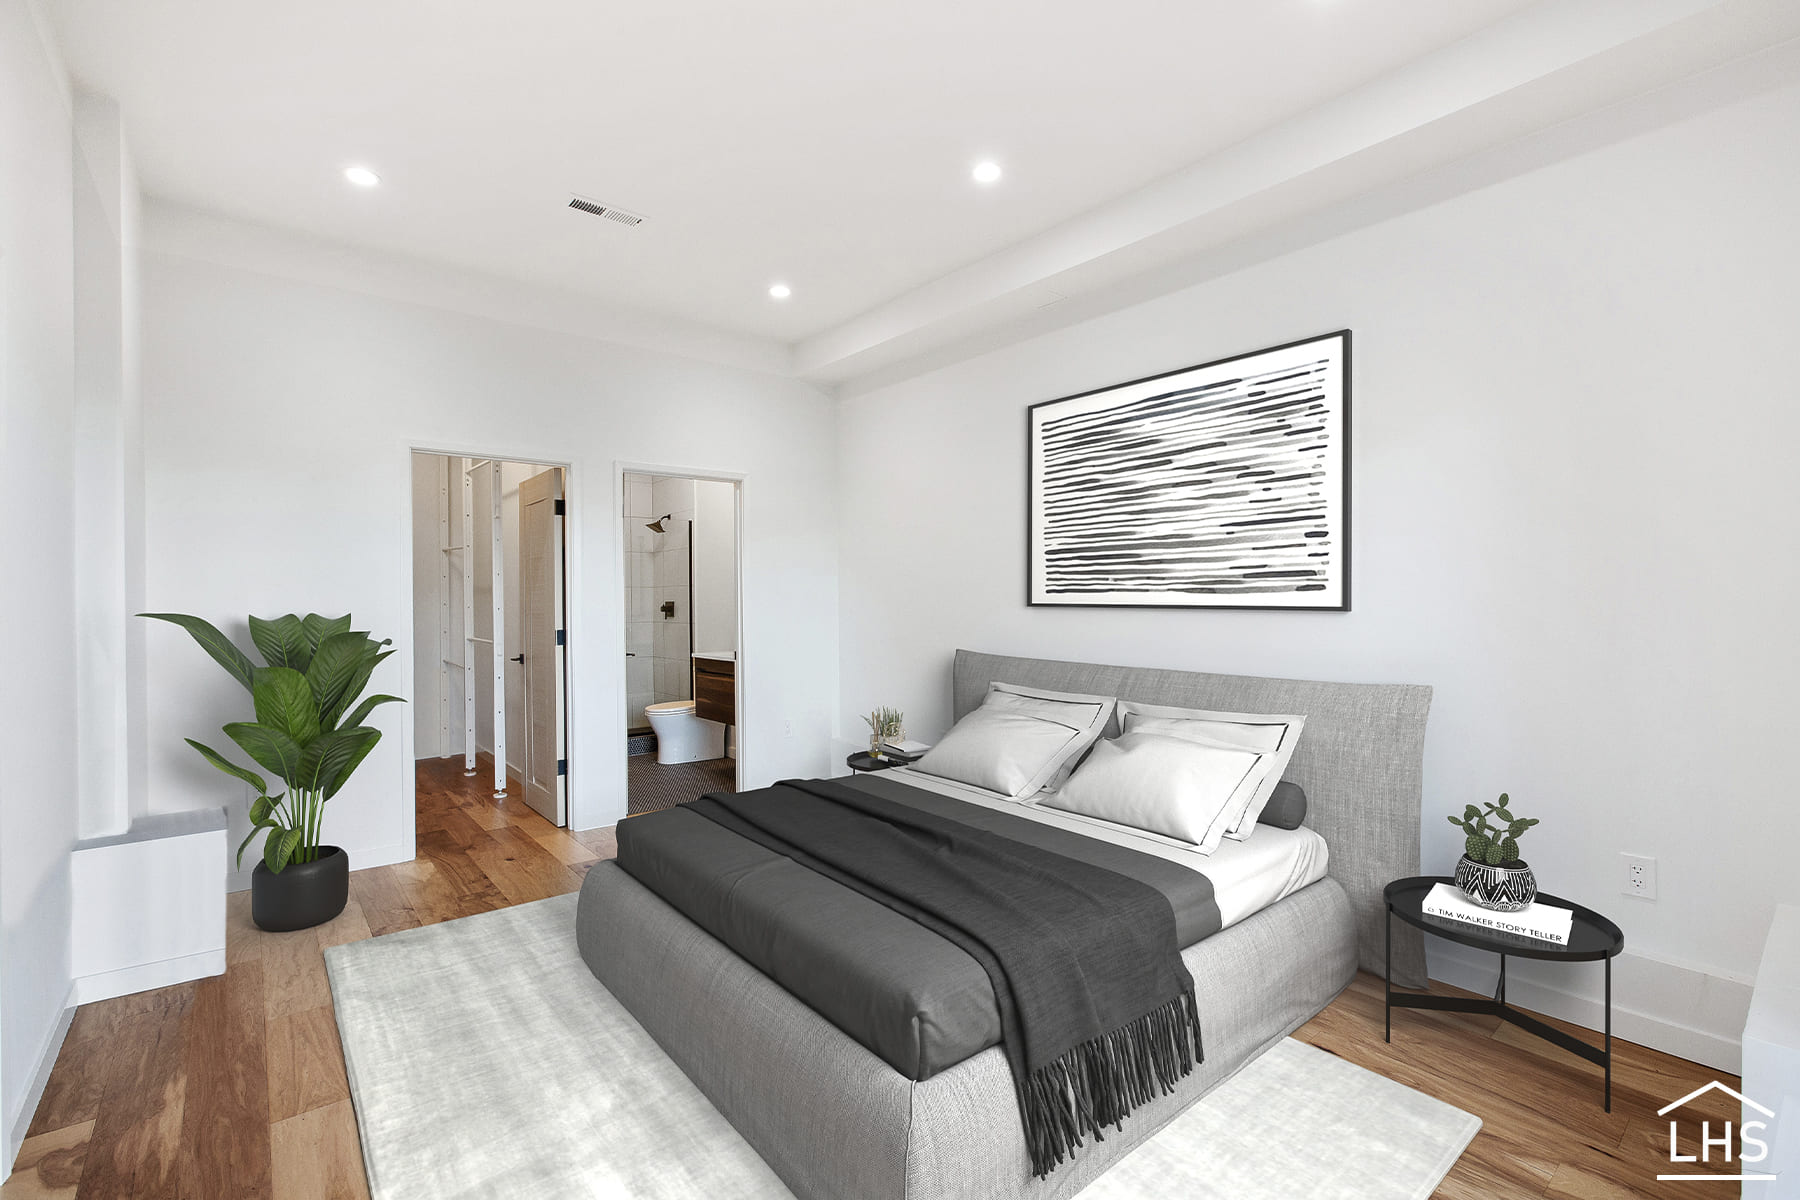 Minimalist style bedroom after